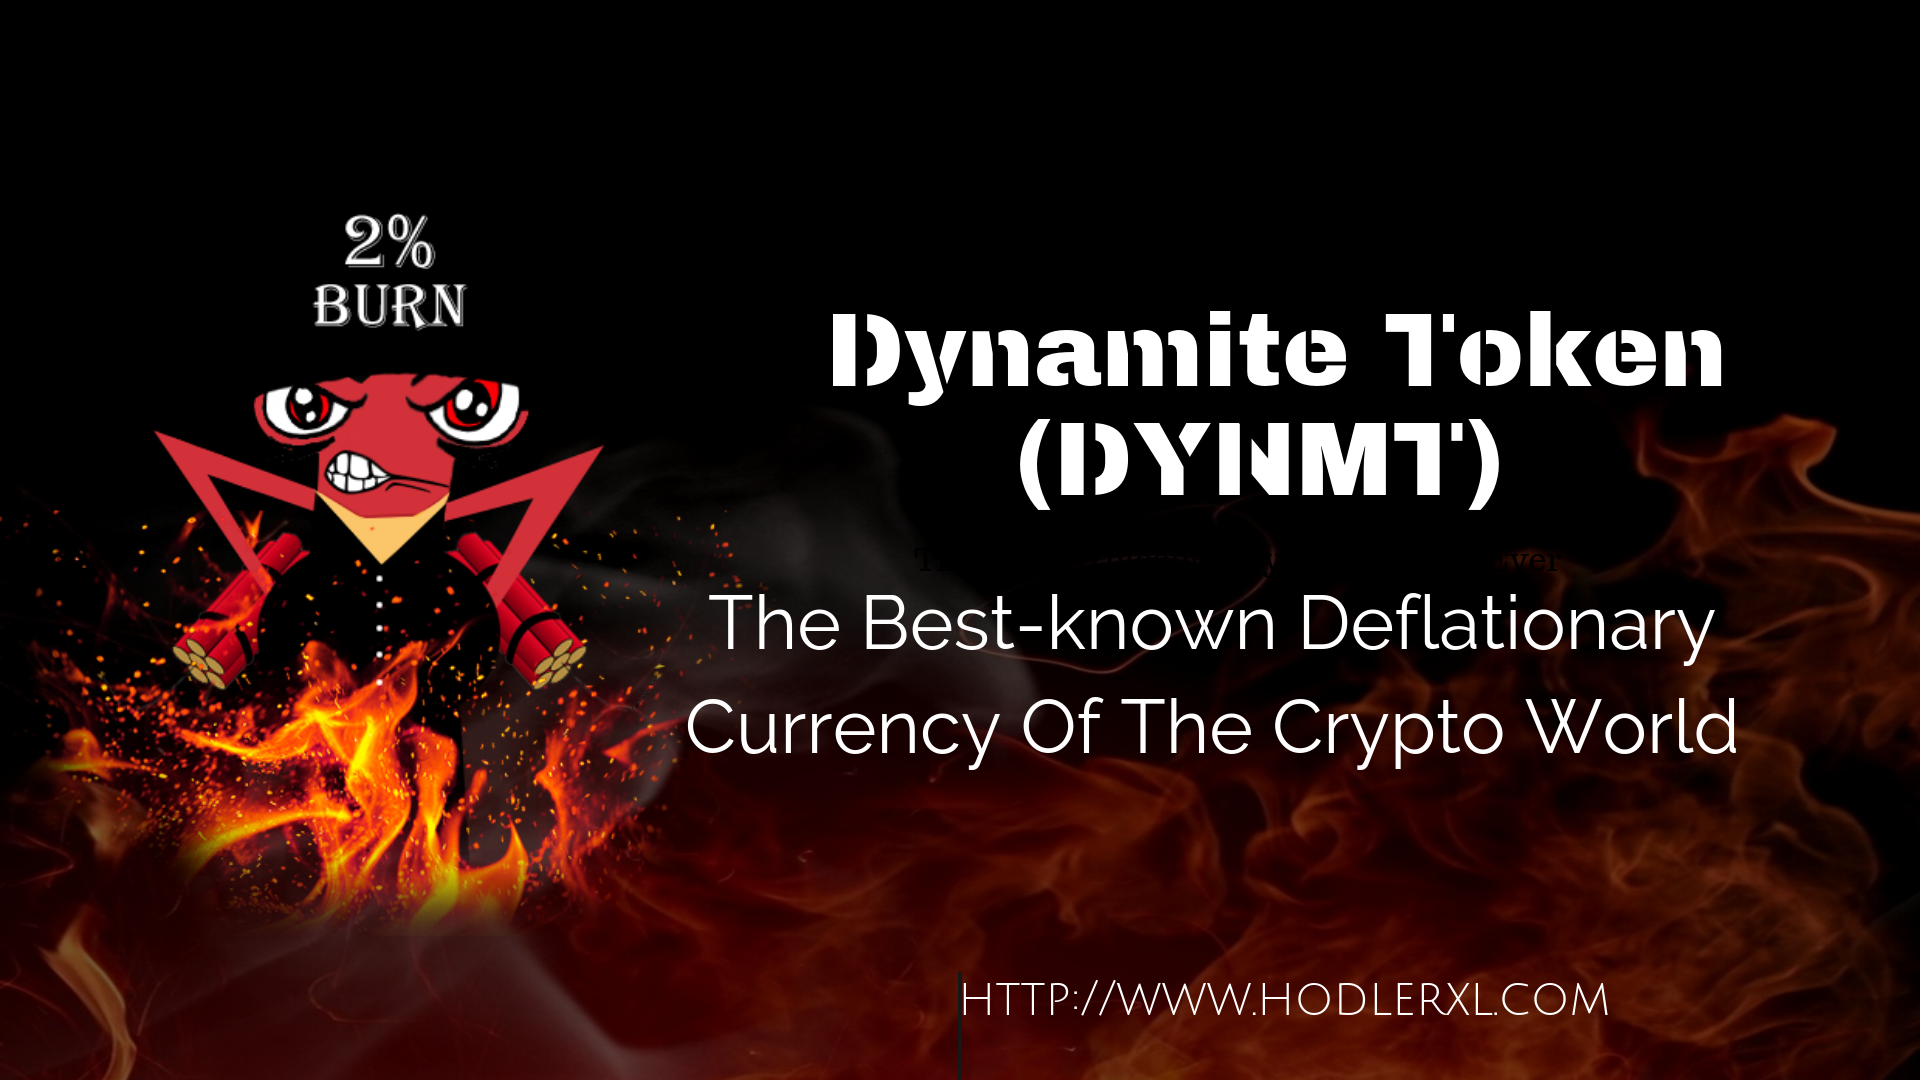 Dynamite Token (DYNMT): Crypto World's Best-known Deflationary Currency